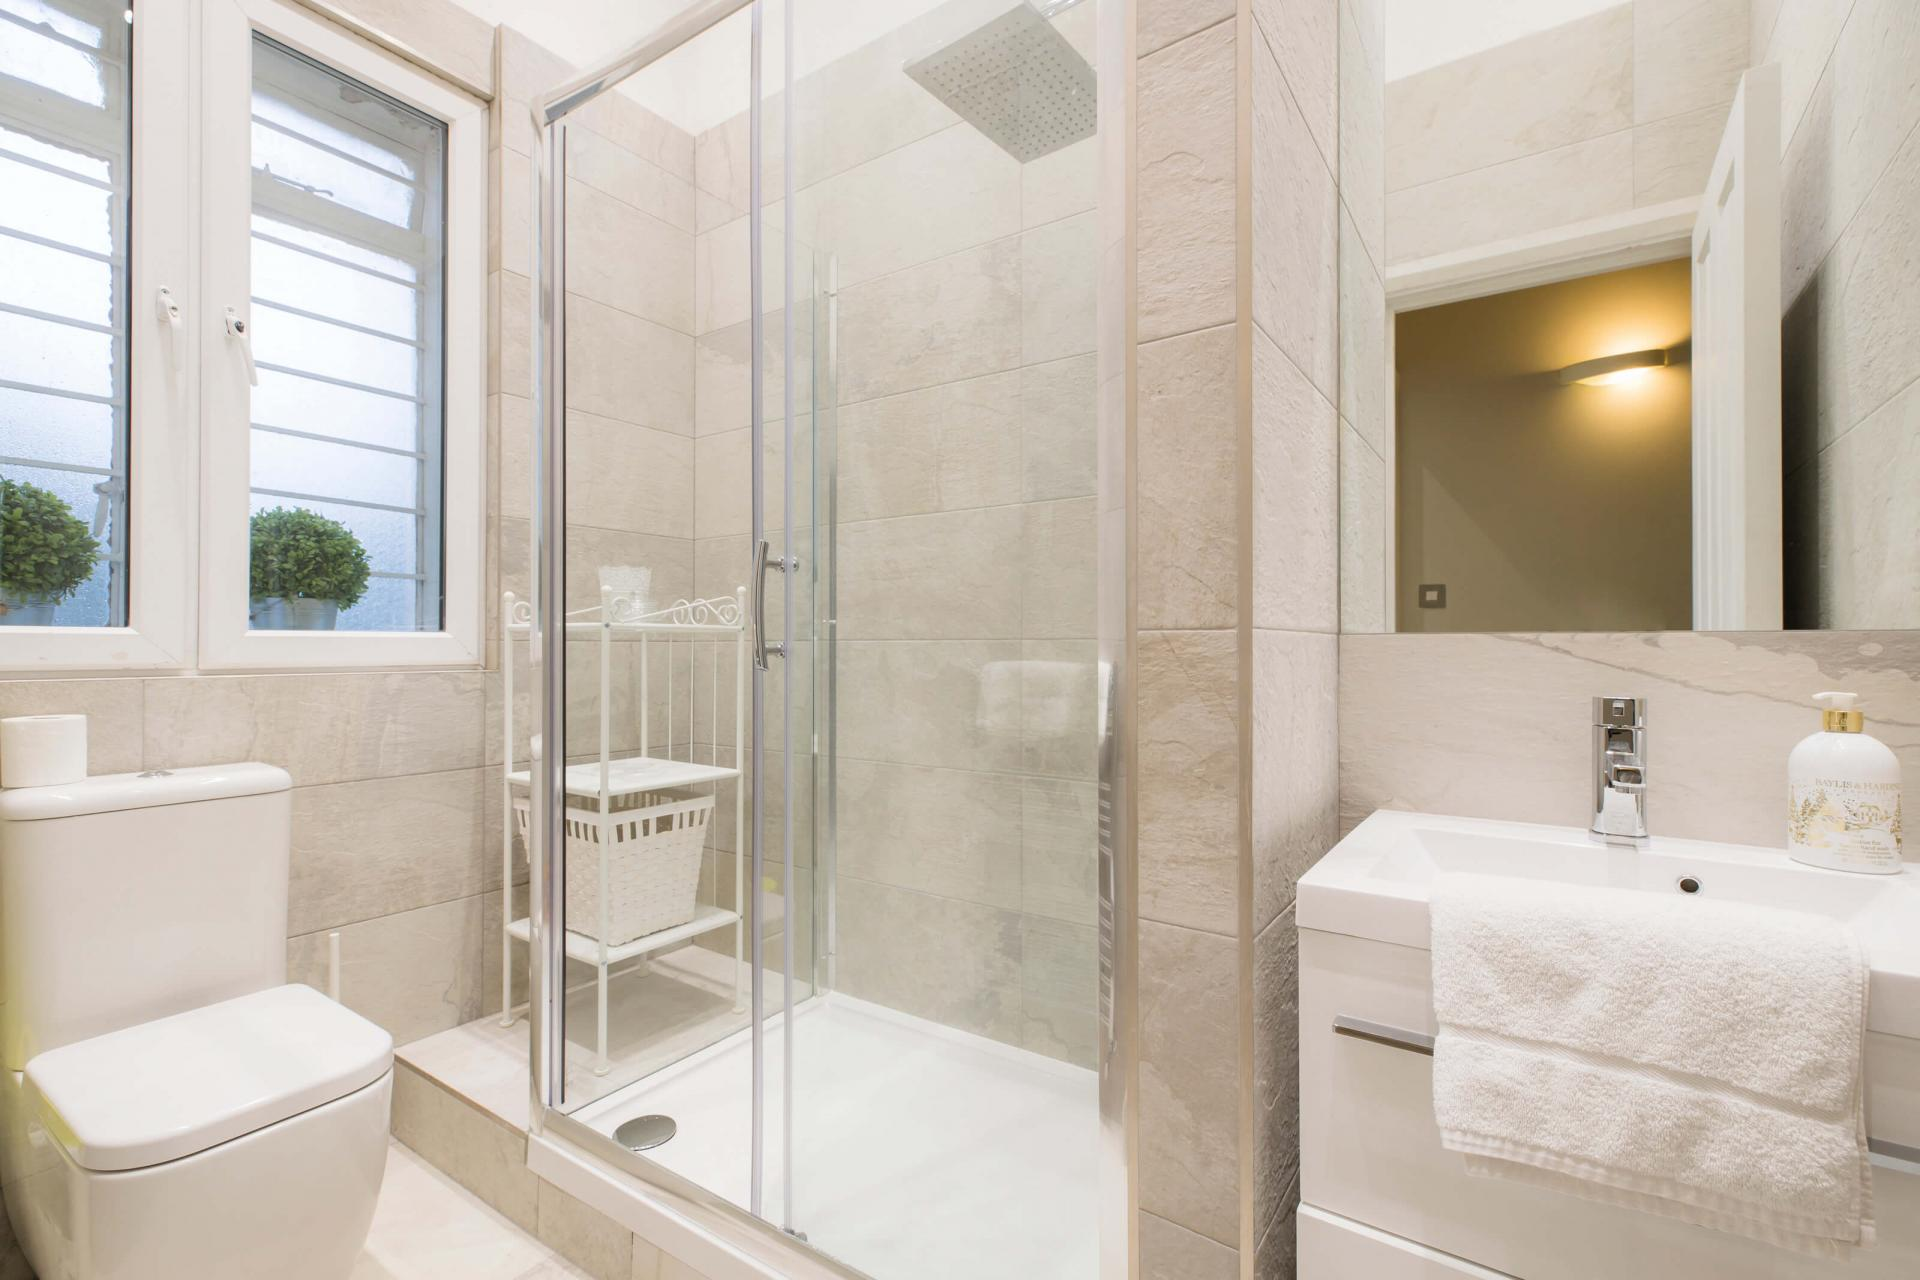 Shower at Westbourne Gardens Apartment, Bayswater, London